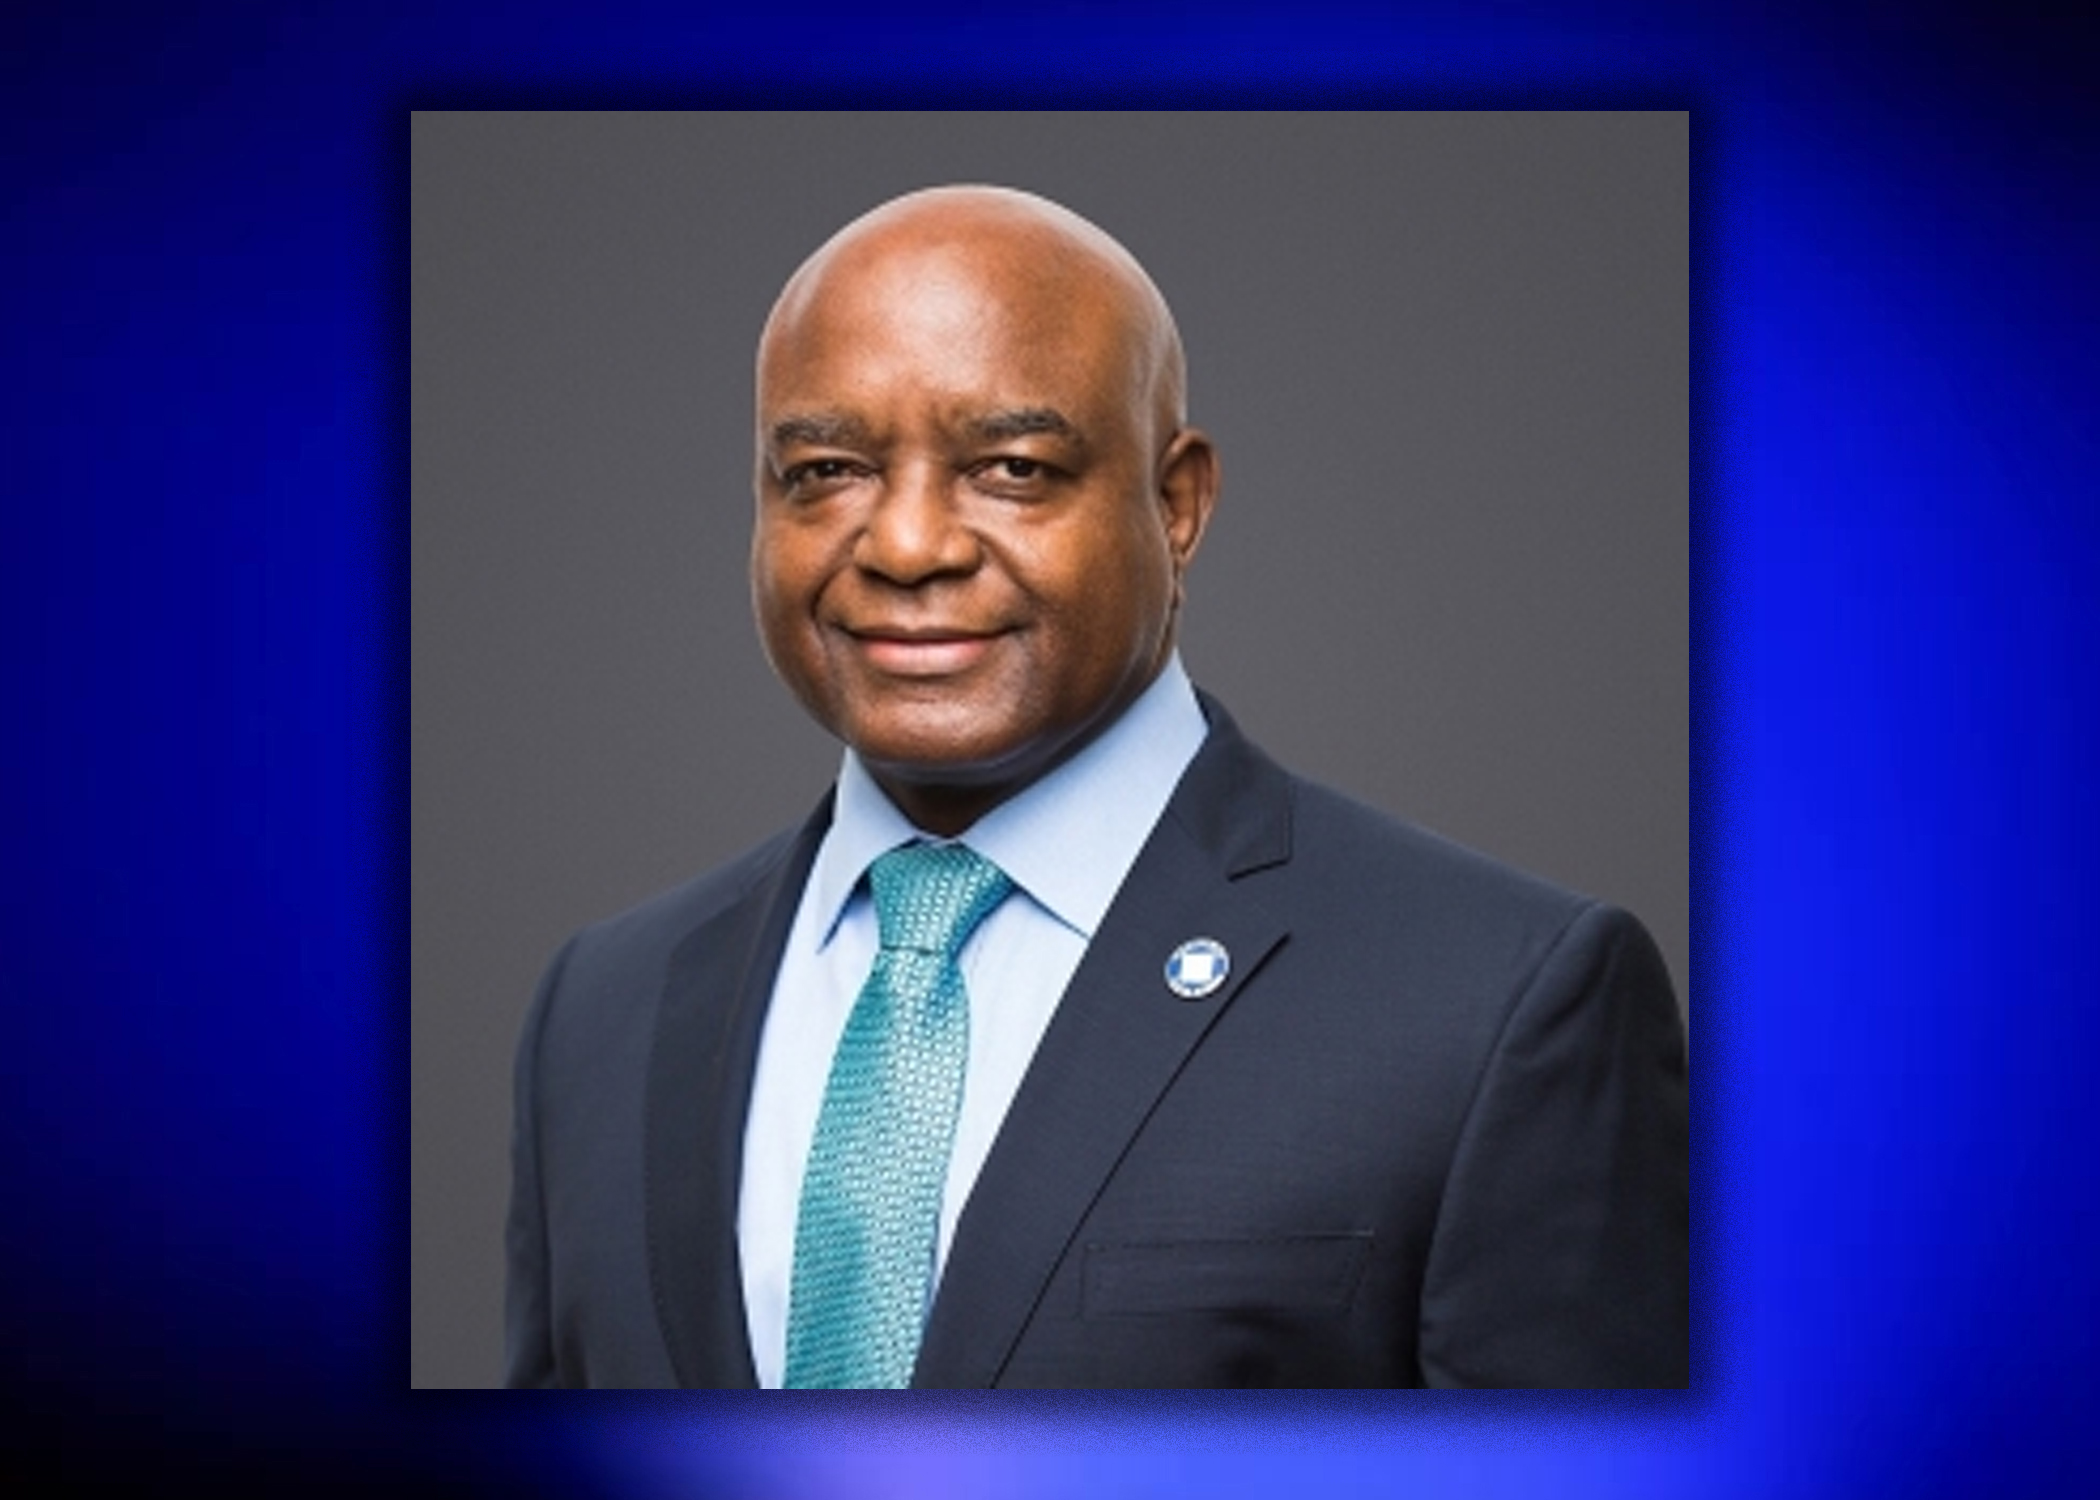 GM of Birmingham Water Works Board to speak at Center Point Chamber luncheon